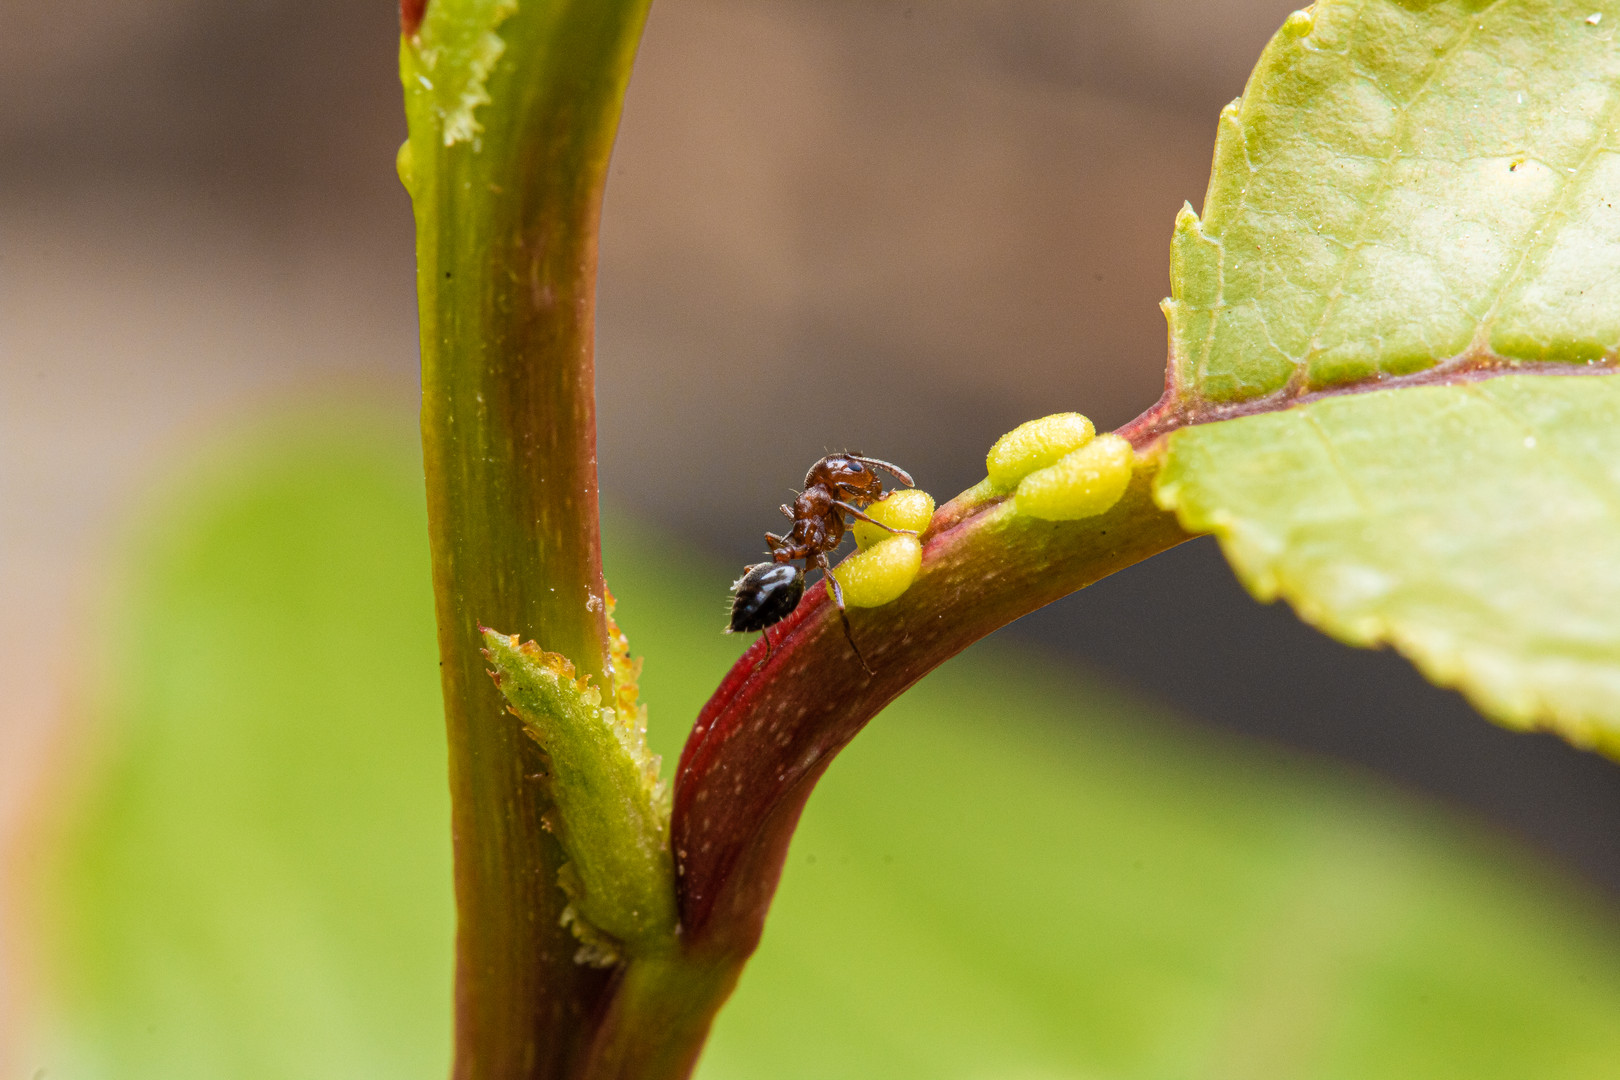 Ants and their livestock